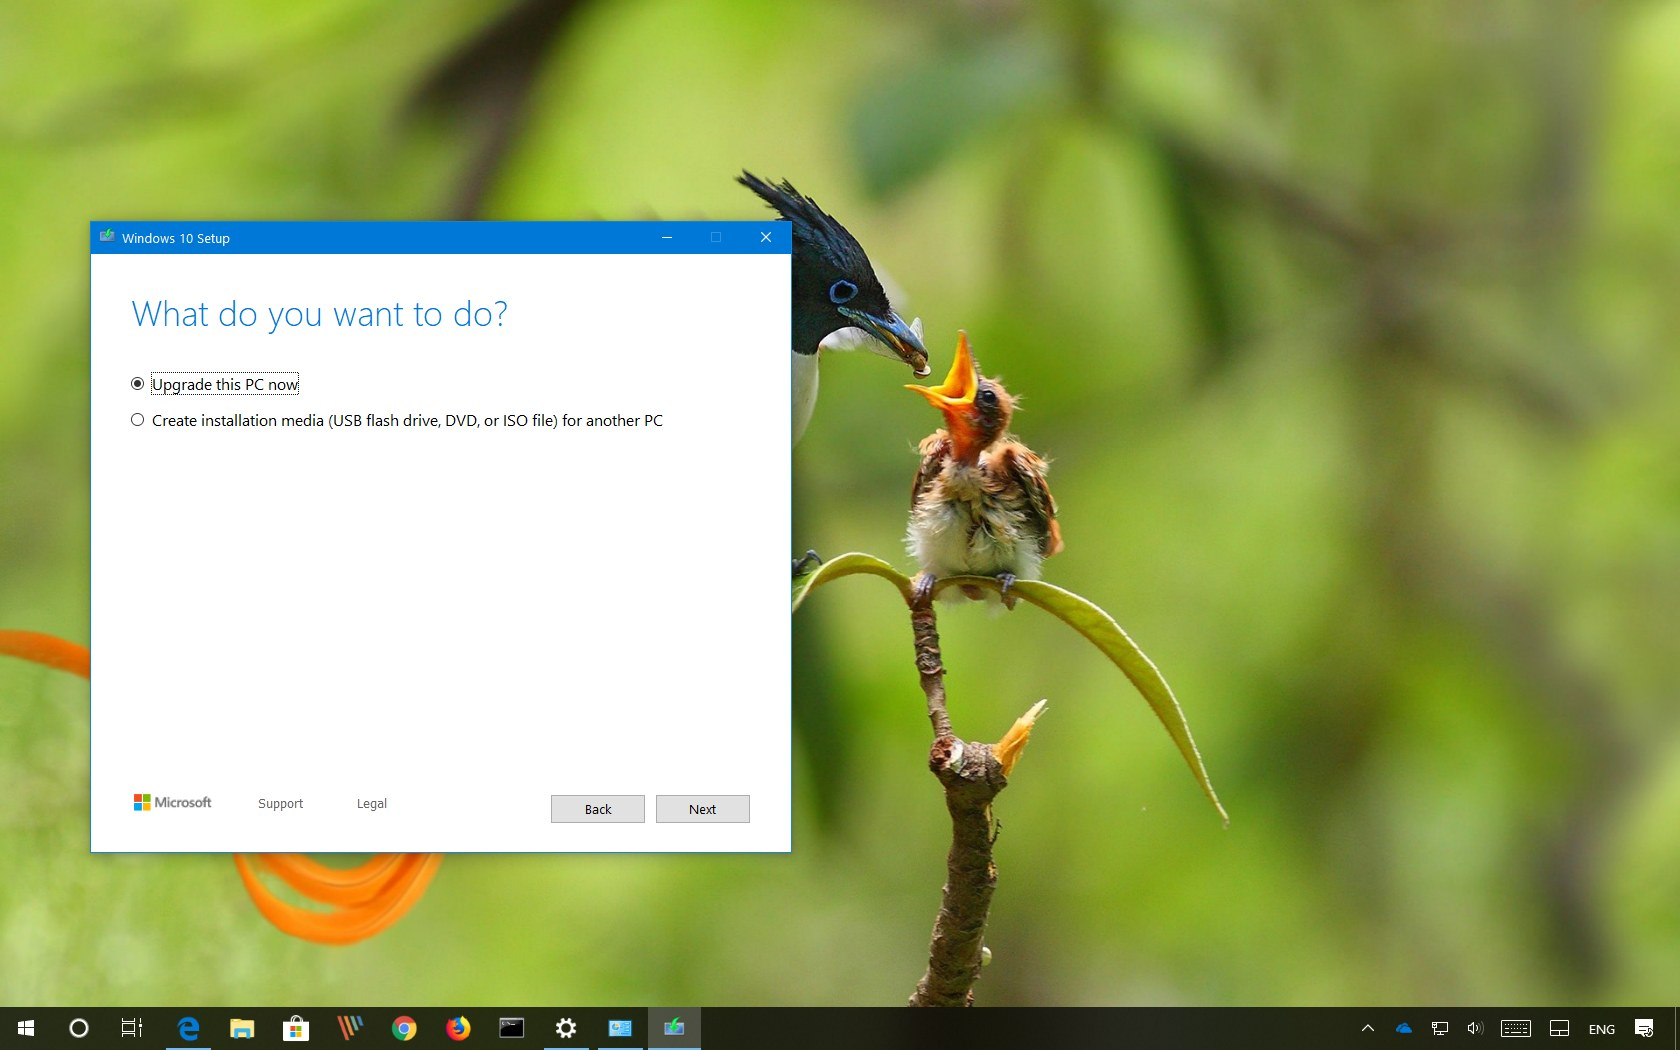 Download Media Creation Tool for Windows 10 version 1903